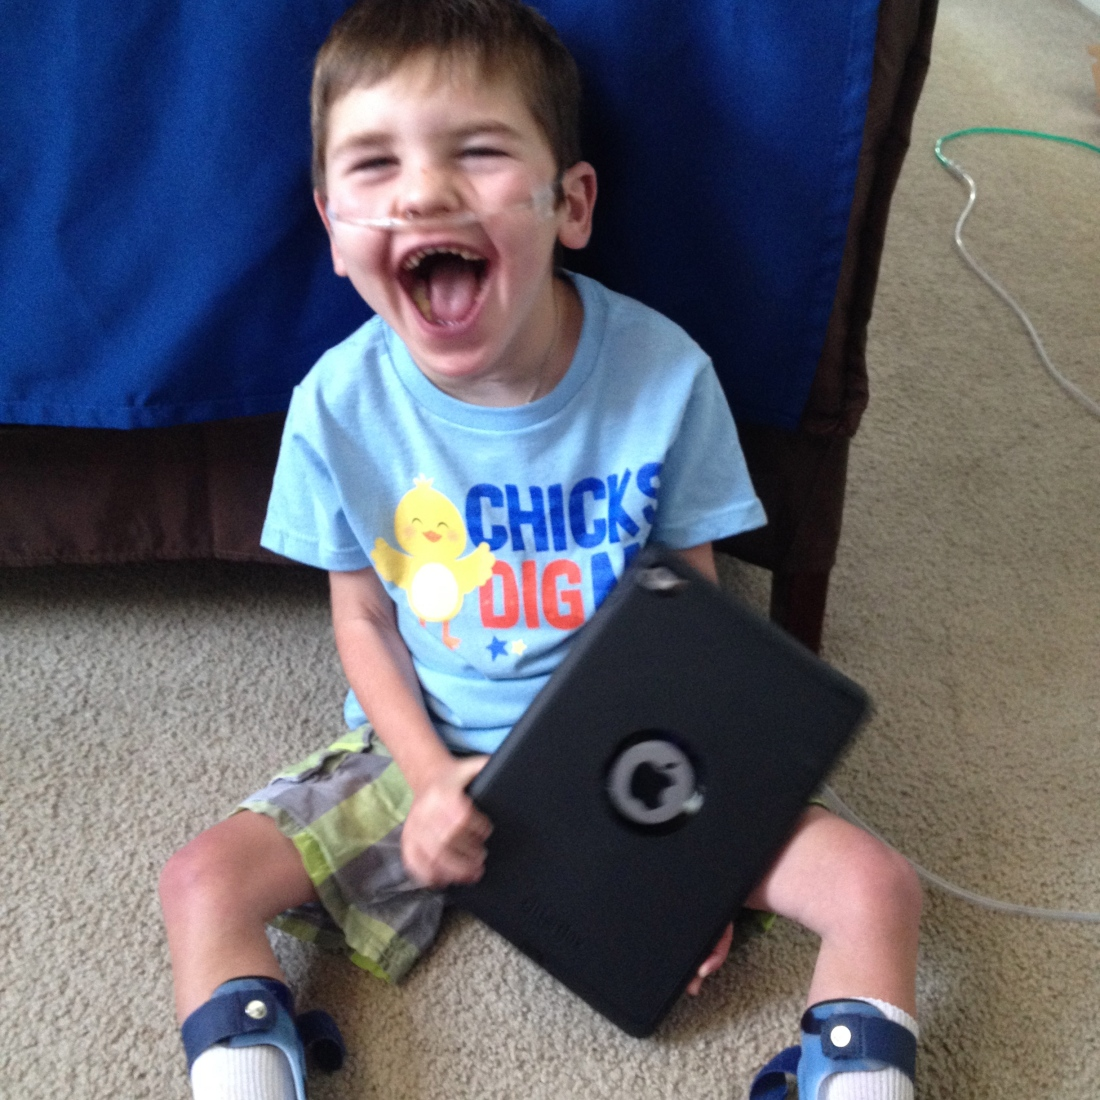 Apparently, a boy + an IPad = a big smile